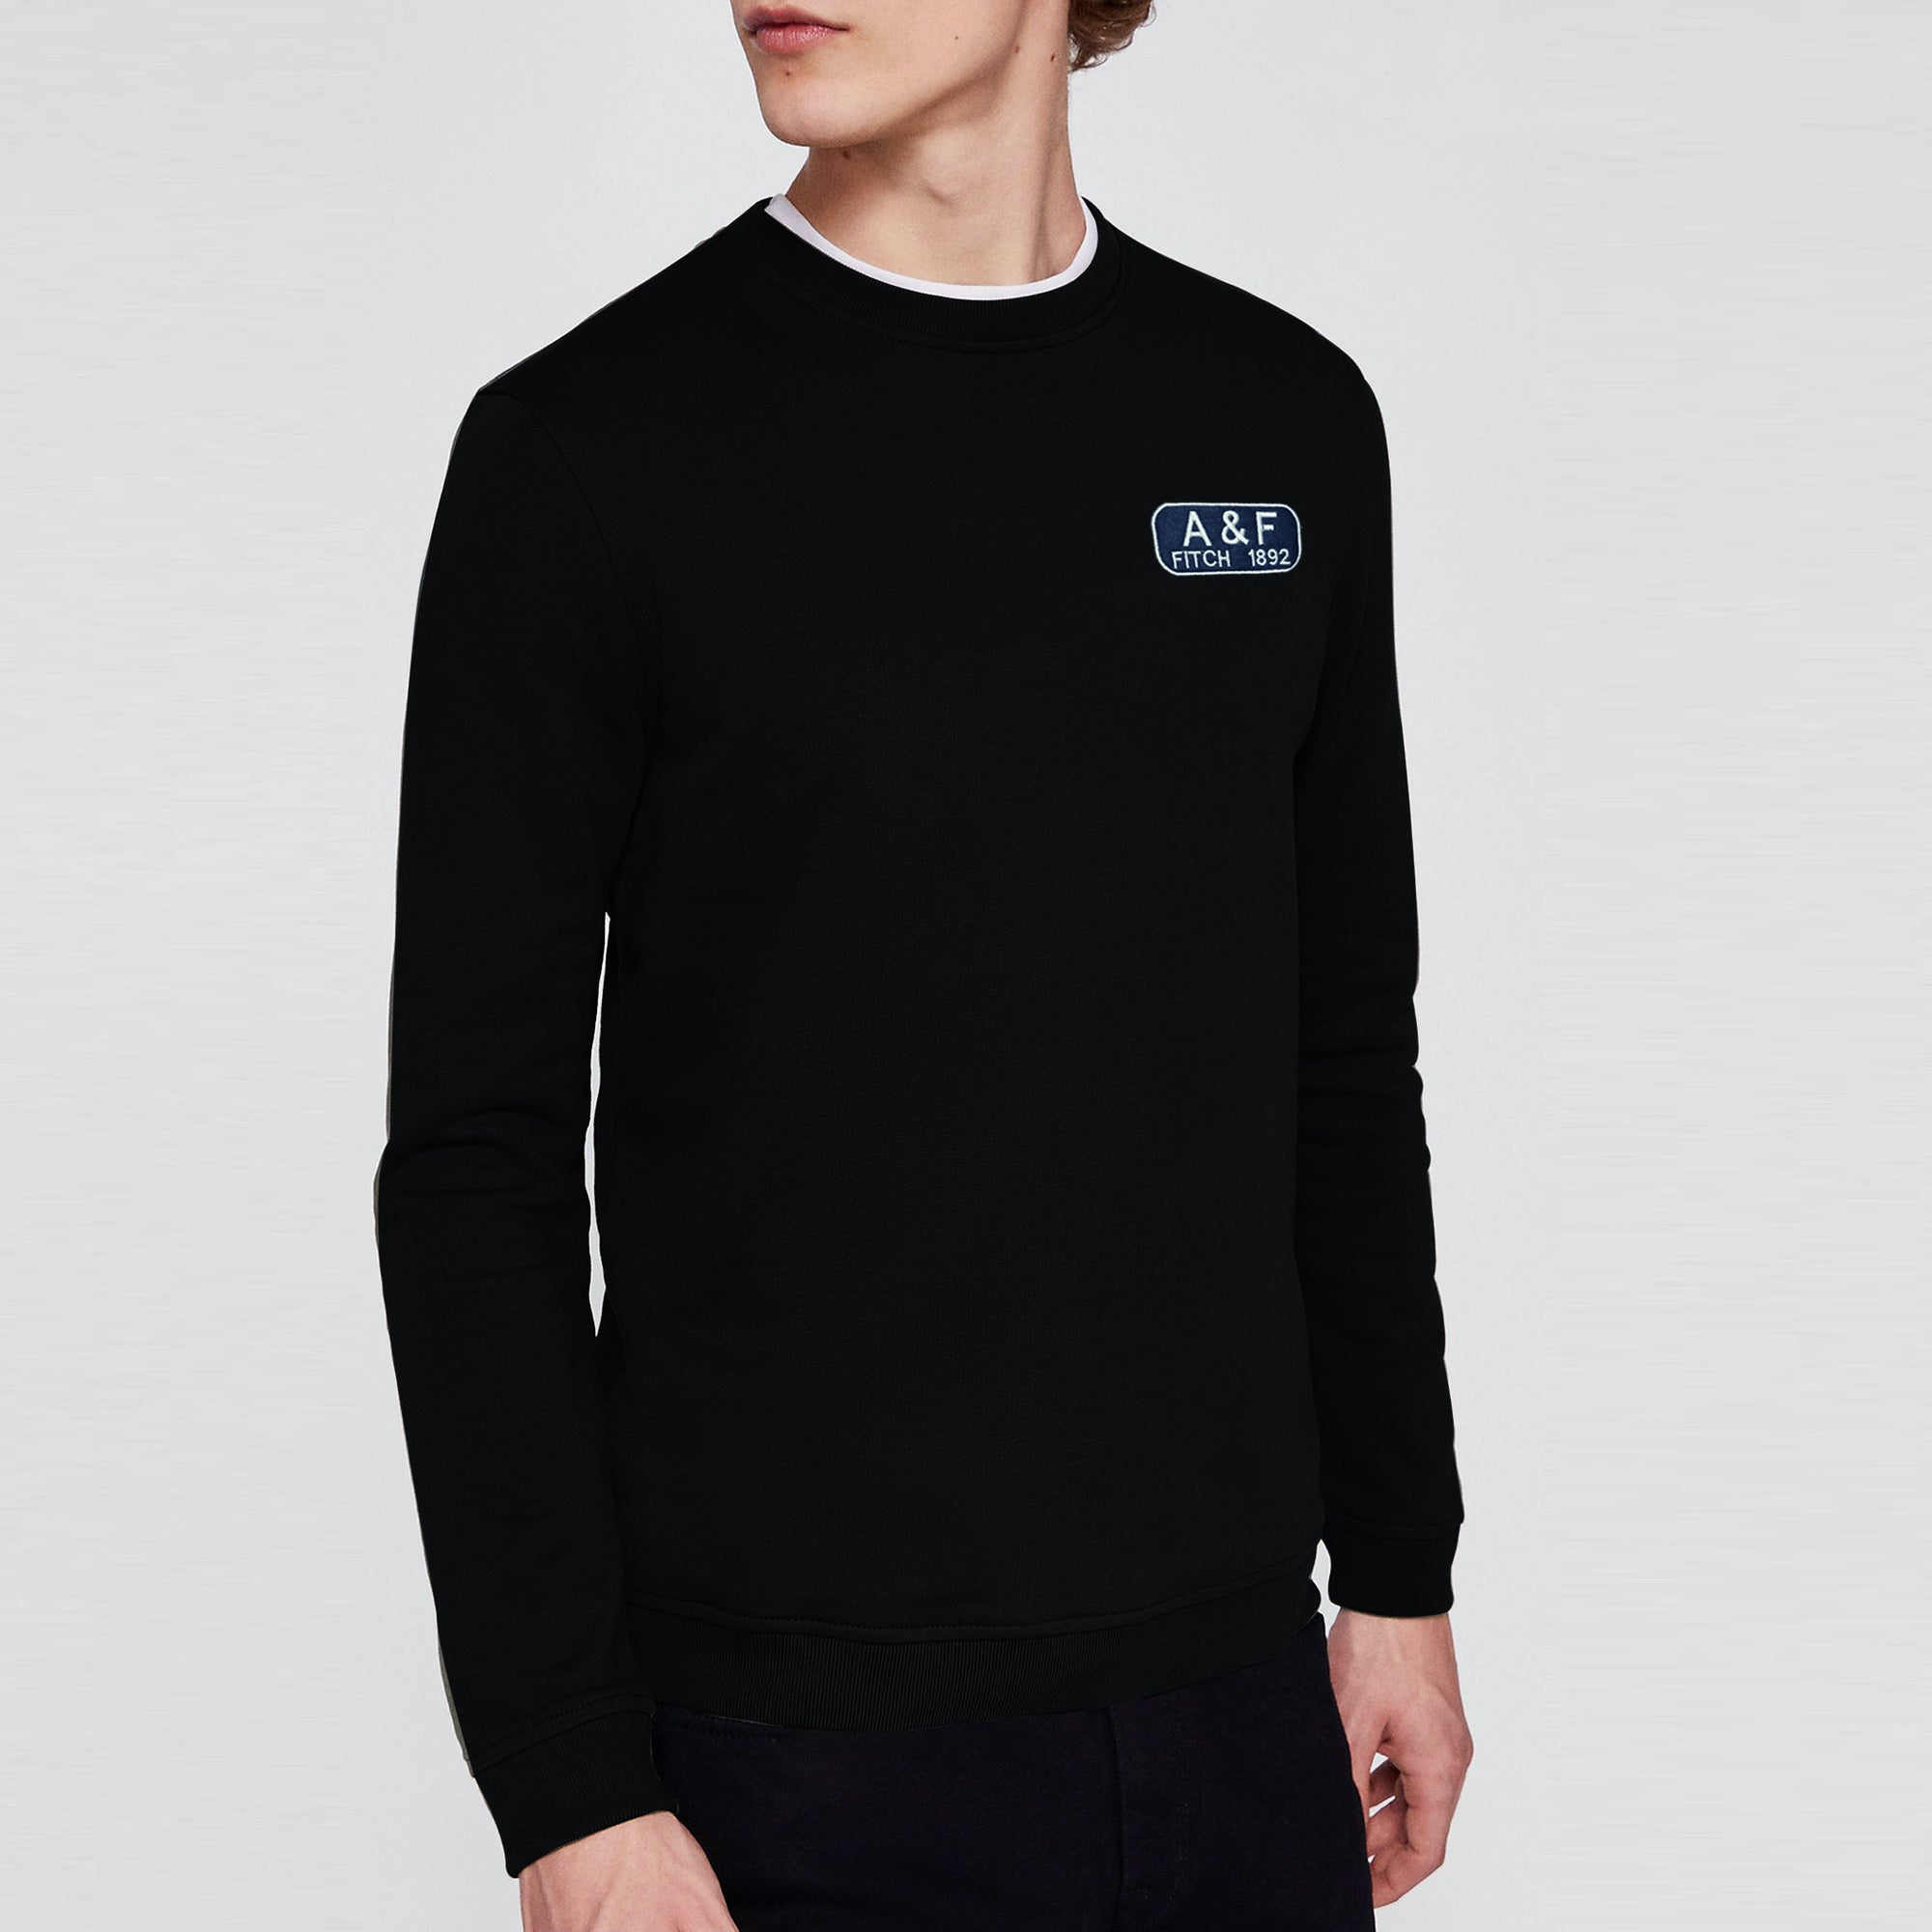 A&F Fleece Crew Neck Sweatshirt For Men-Black-BE7493